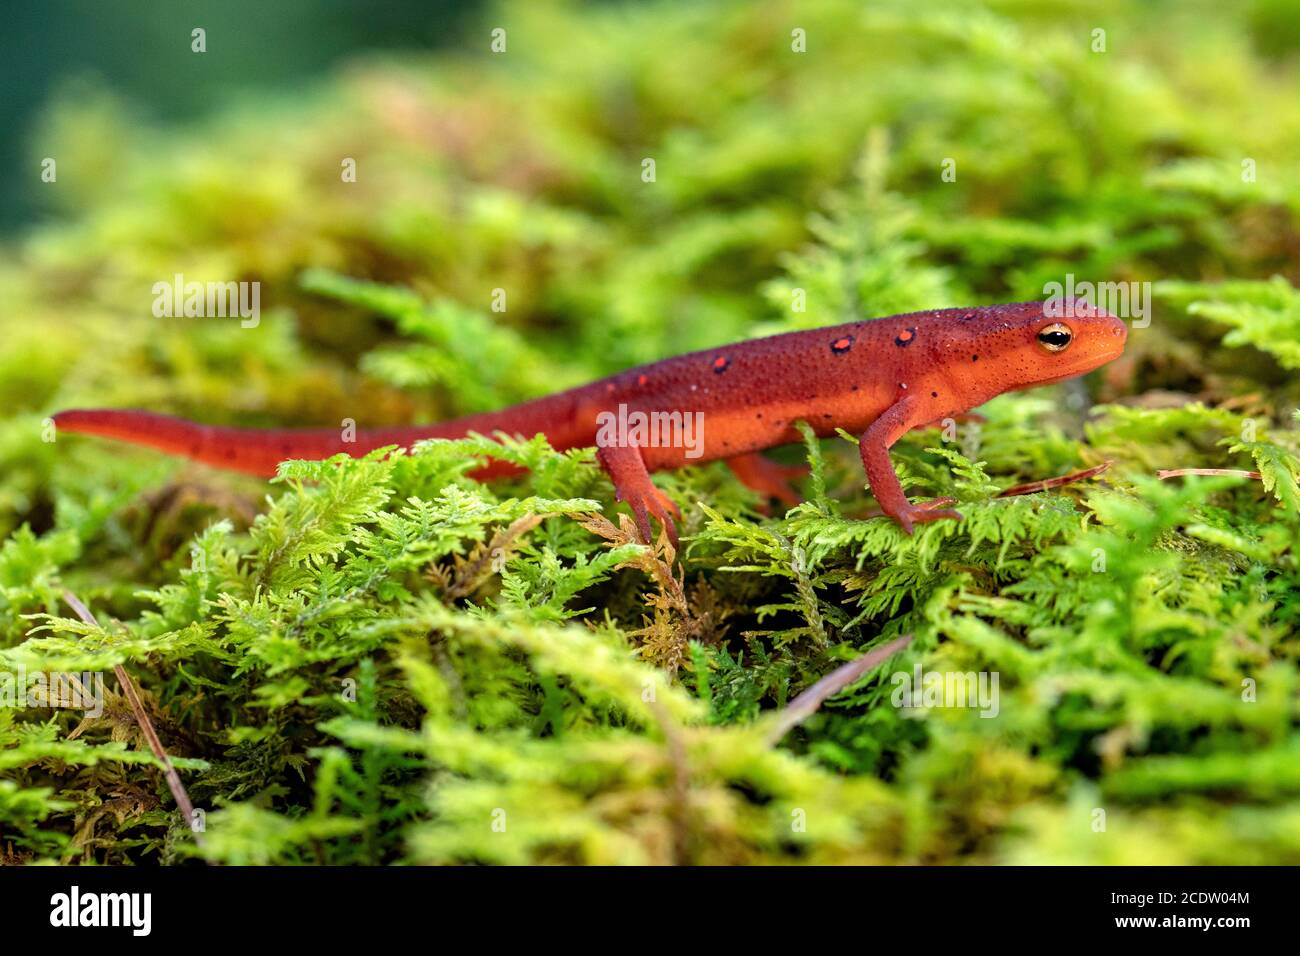 Red Eft of Eastern Newt (Notophthalmus viridescens) - DuPont State Recreational Forest near Hendersonville, North Carolina, USA Stock Photo